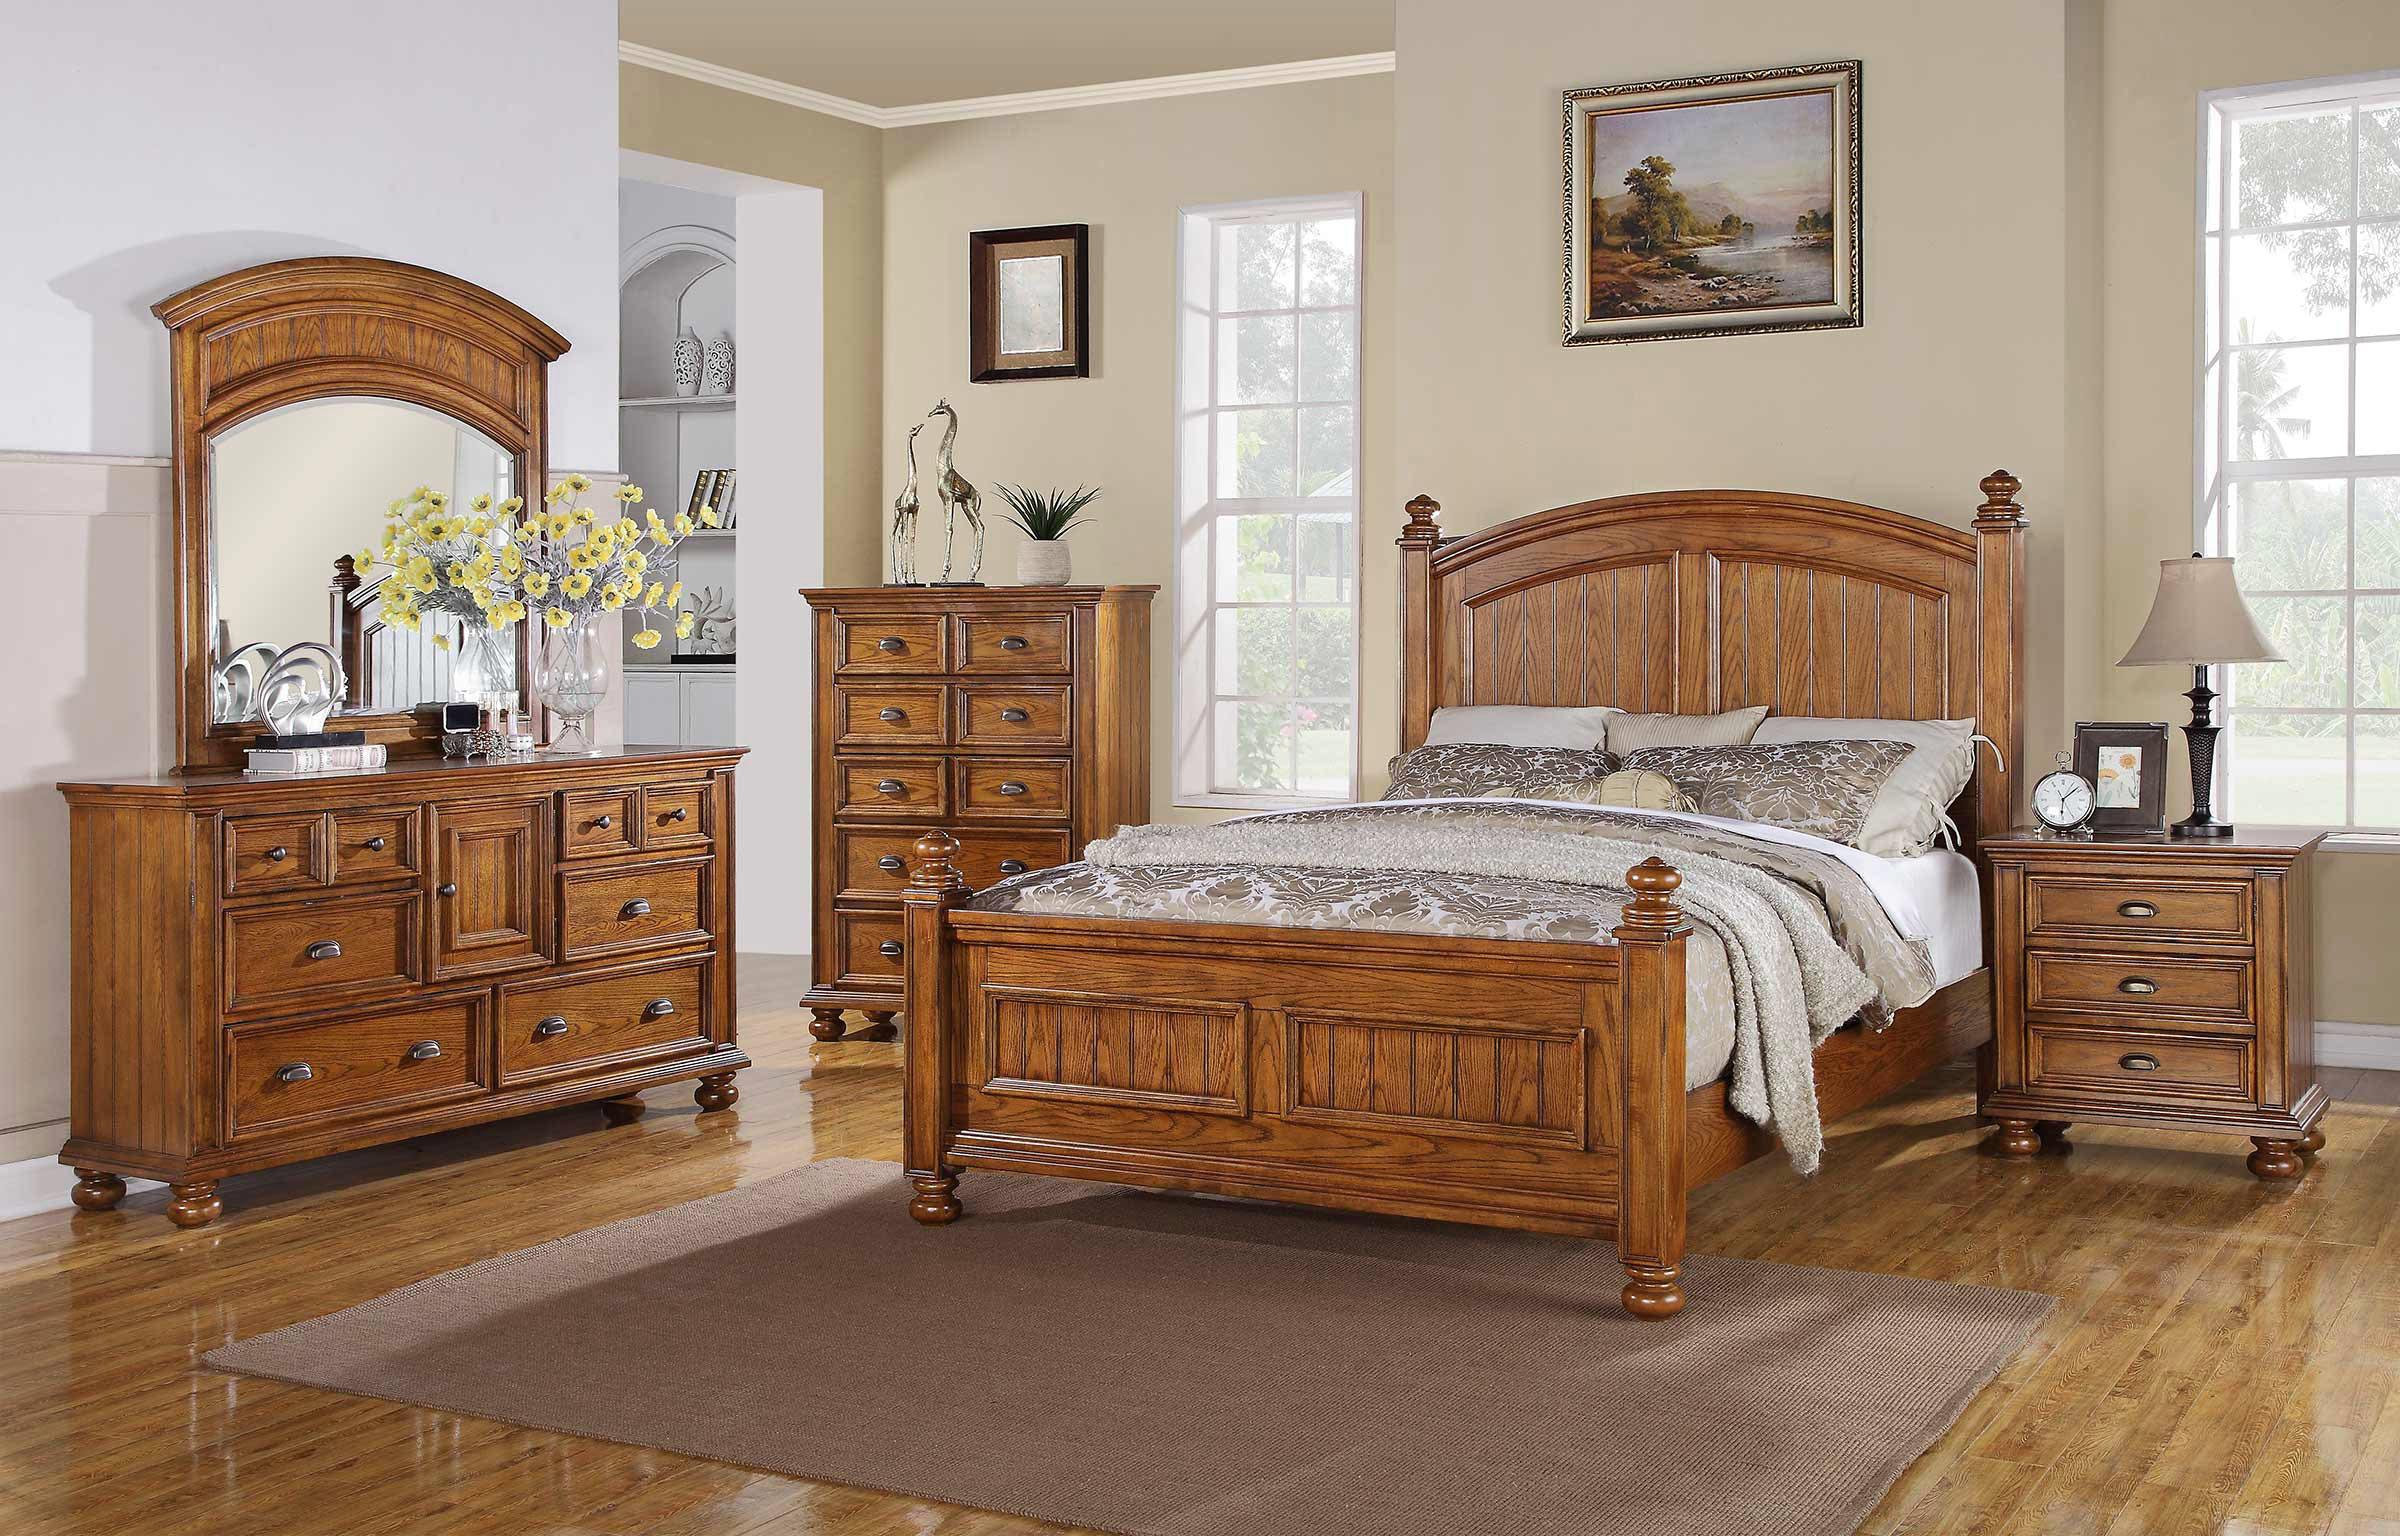 Whitmire 39 s furniture coupons near me in orlando 8coupons for K furniture near me